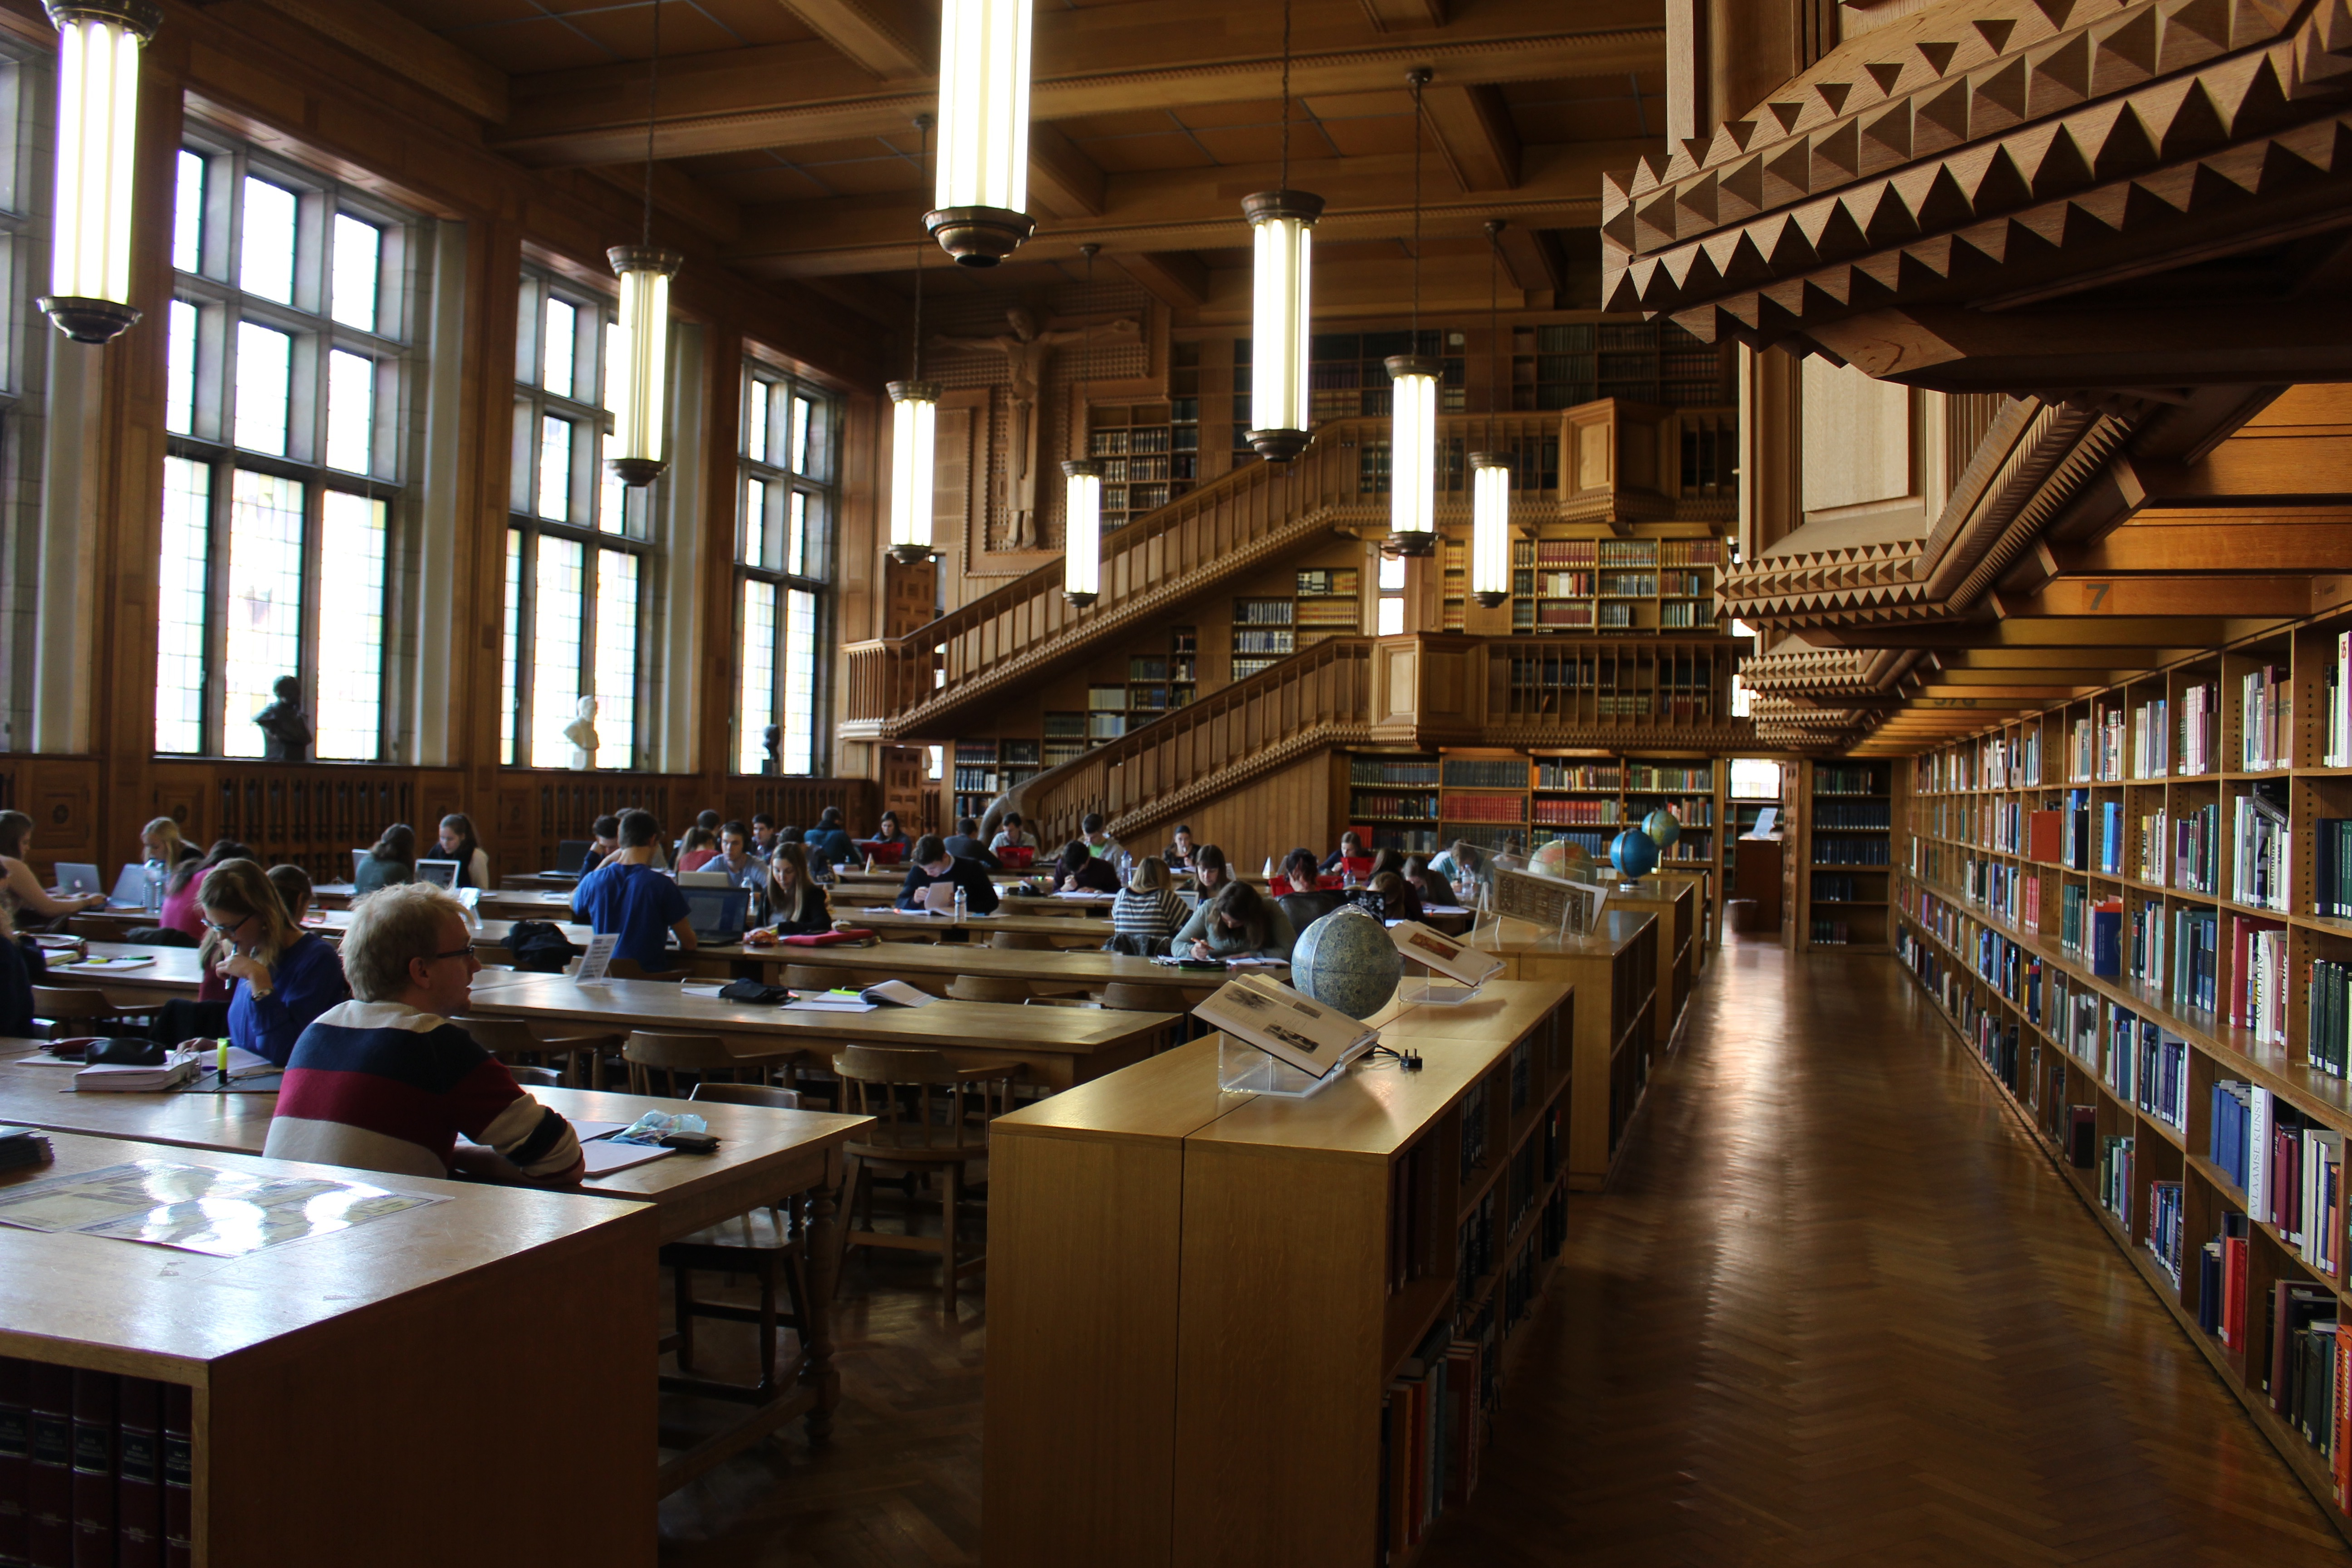 KU Leuven Library reading room